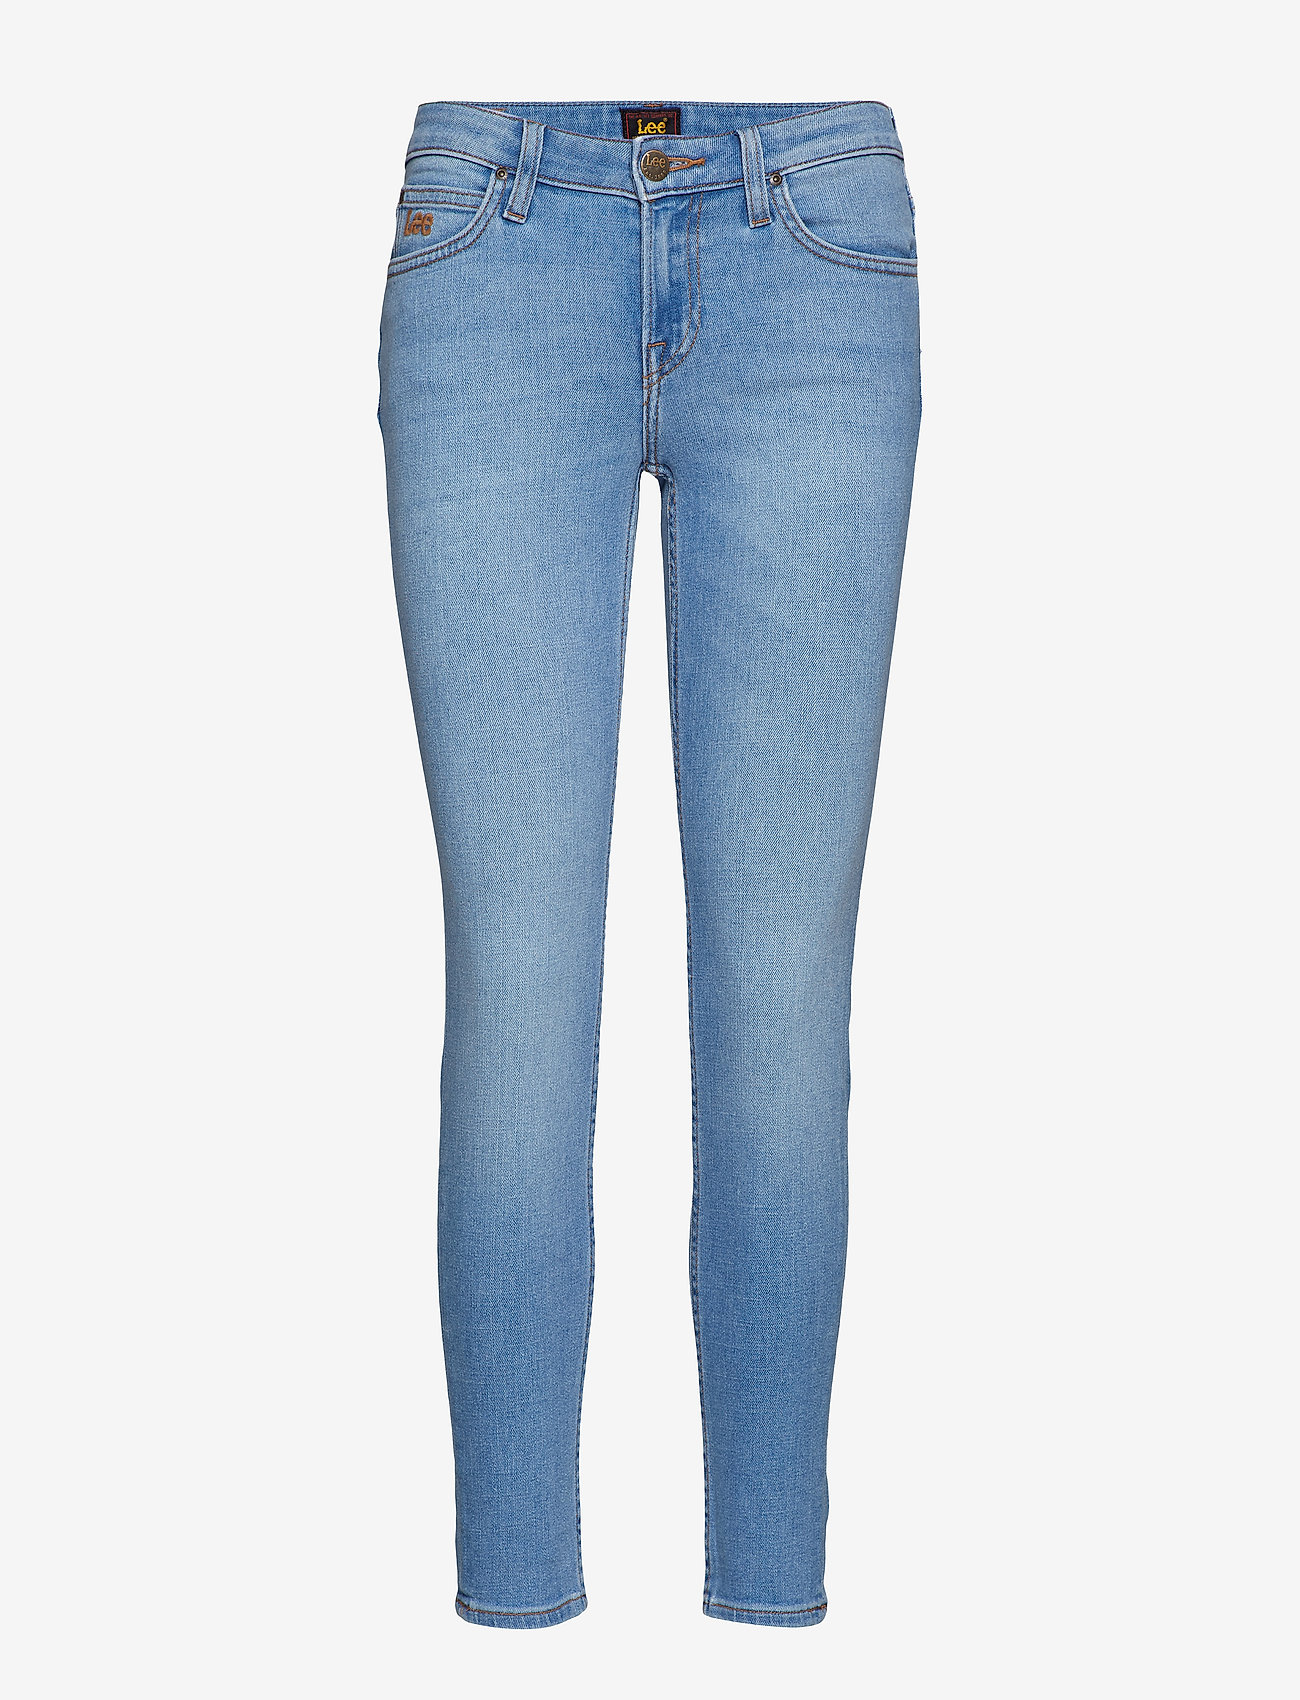 Lee Jeans - SCARLETT - skinny jeans - flight